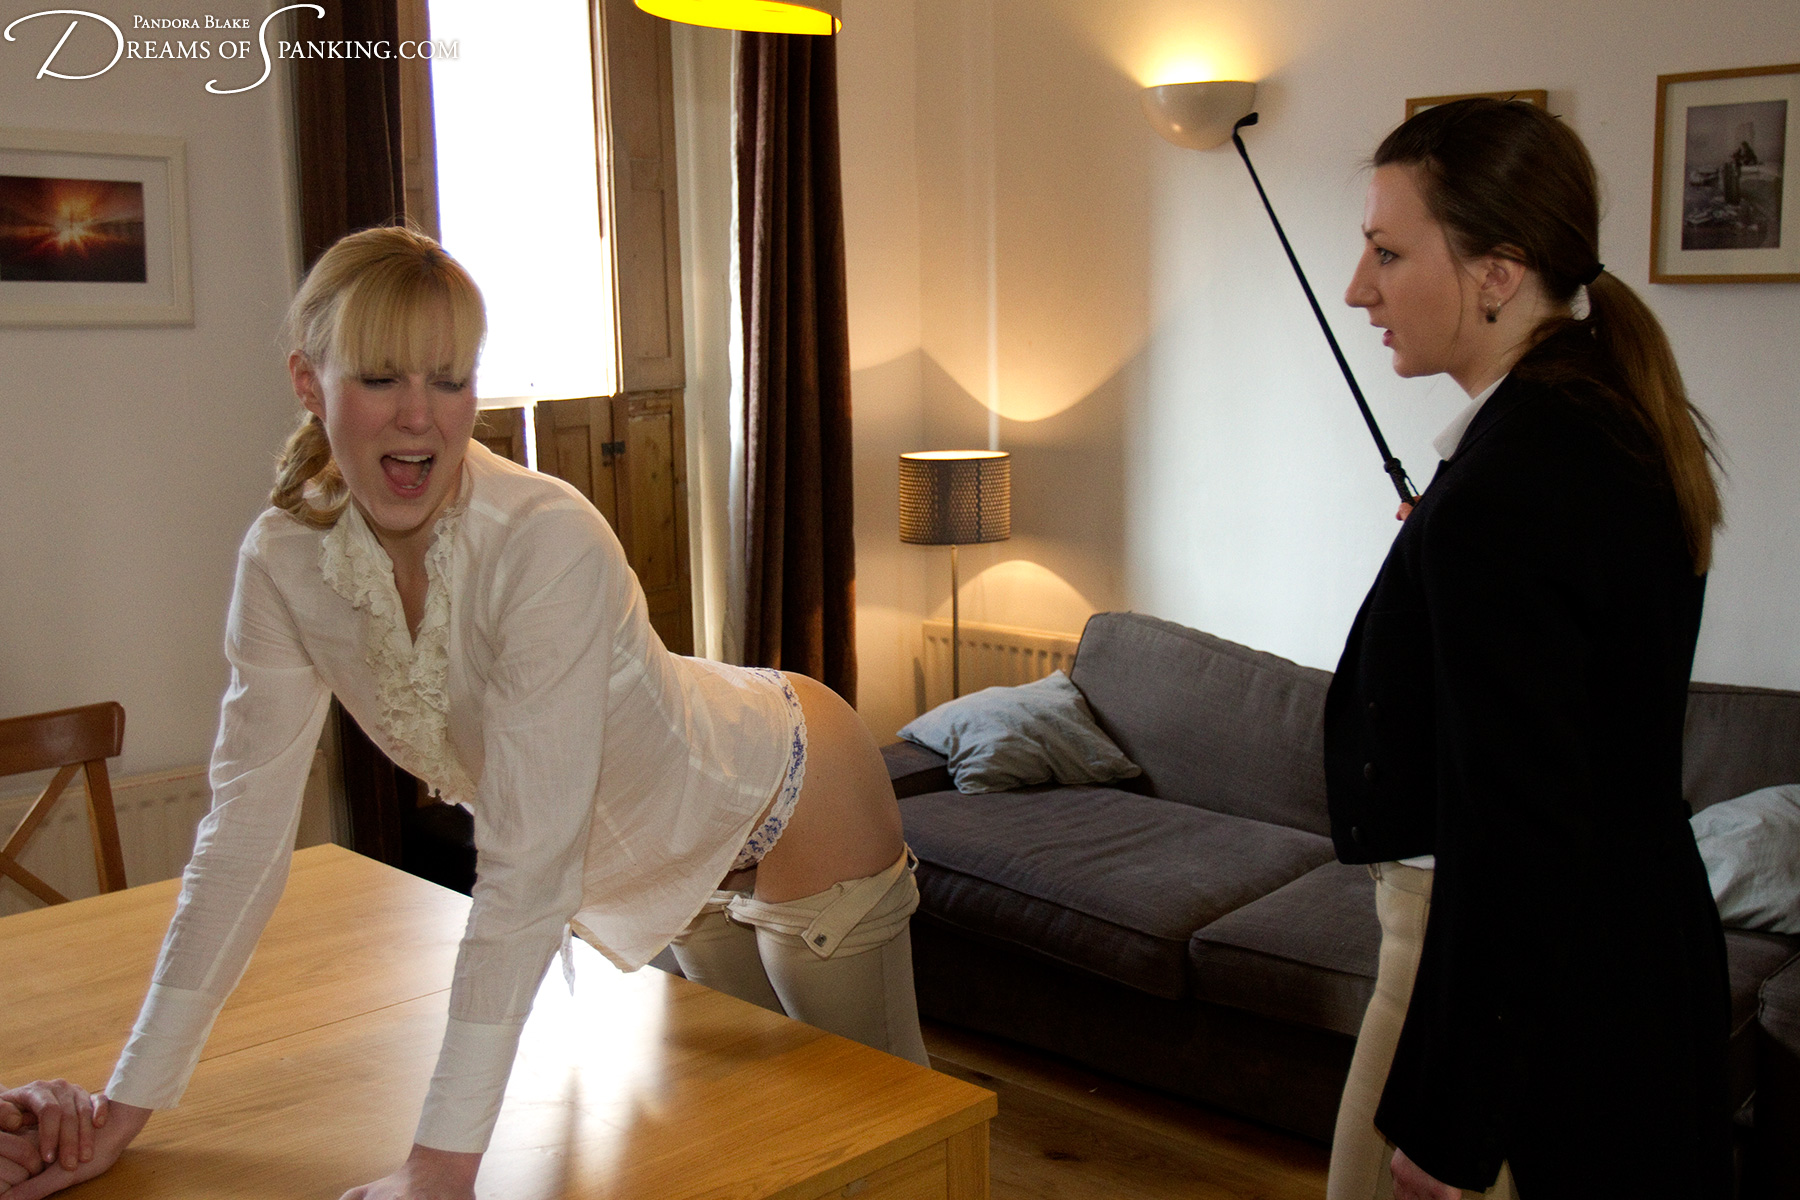 Amelia Jane Rutherford whipped in tight jodhpurs at Dreams of Spanking